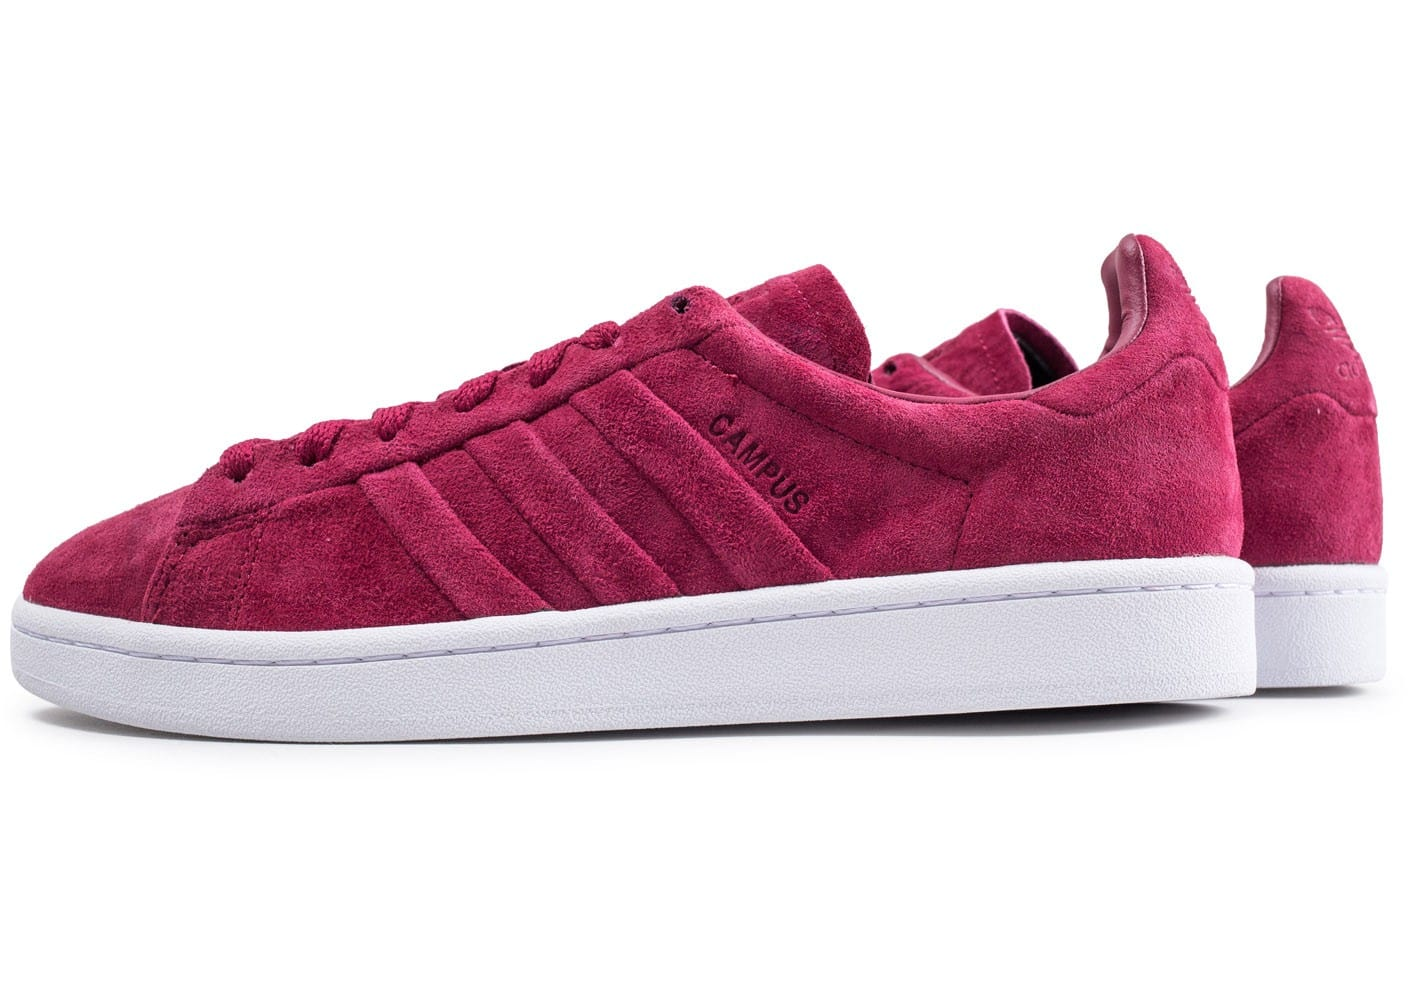 adidas campus bordeaux 38